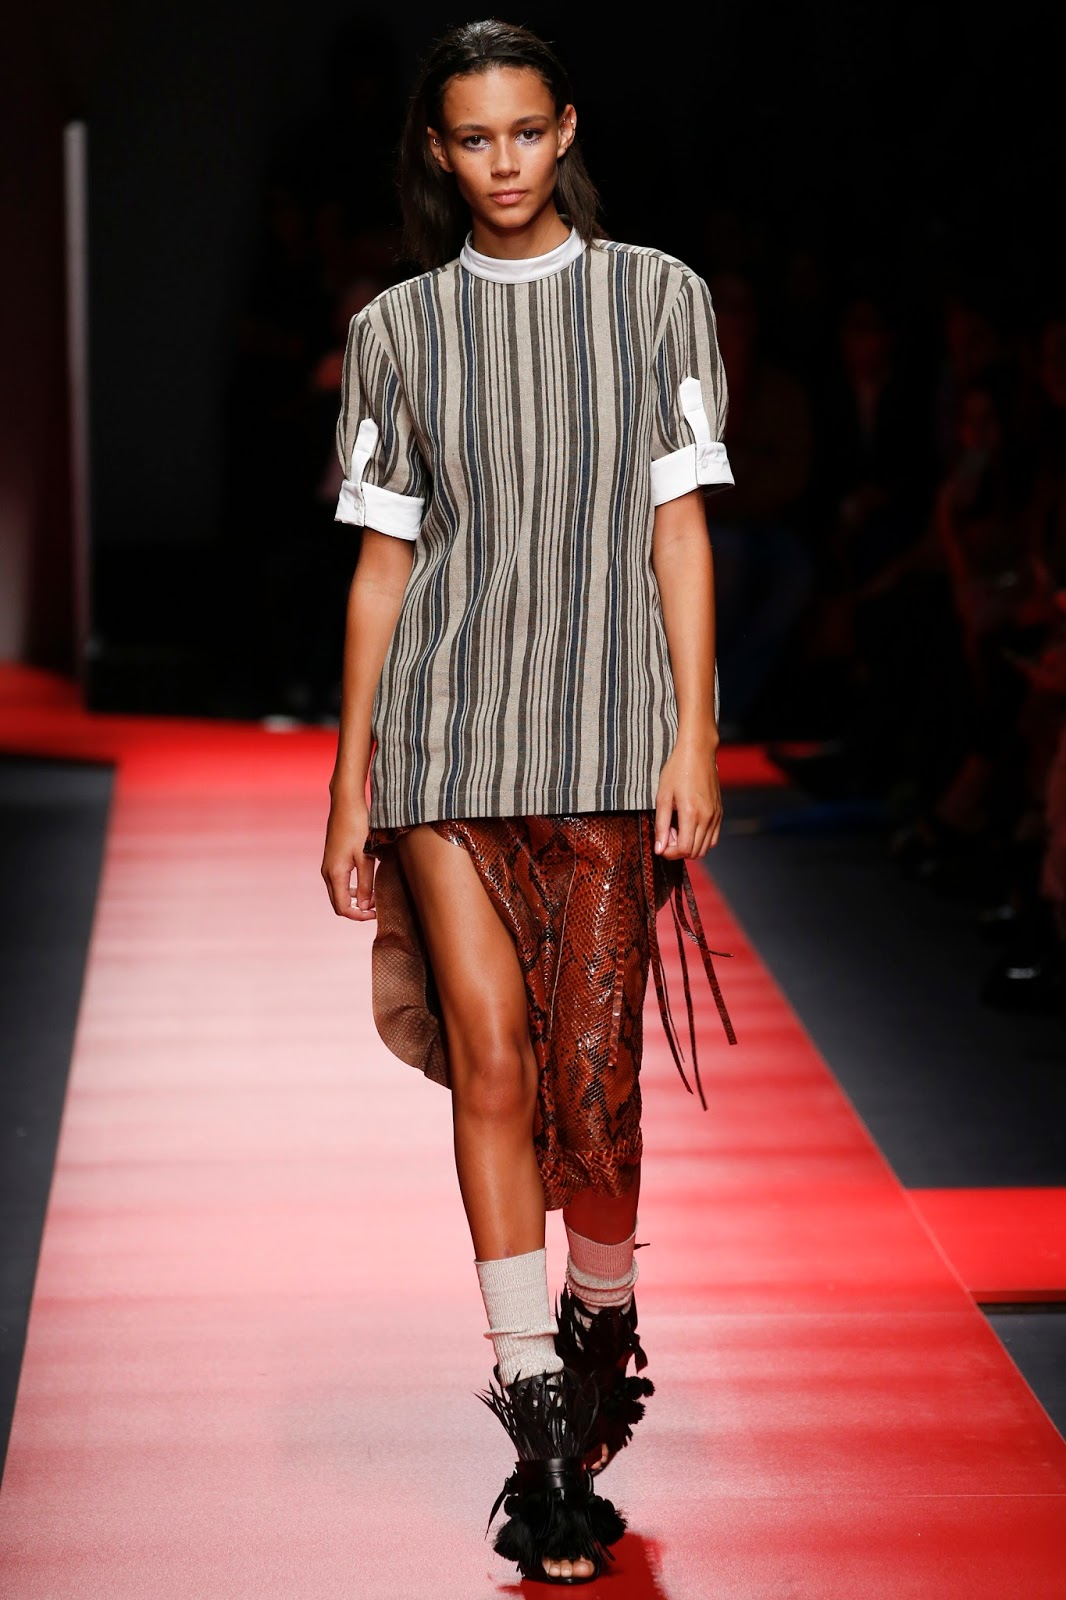 milan fashion week, look, catwalk show, spring 2016